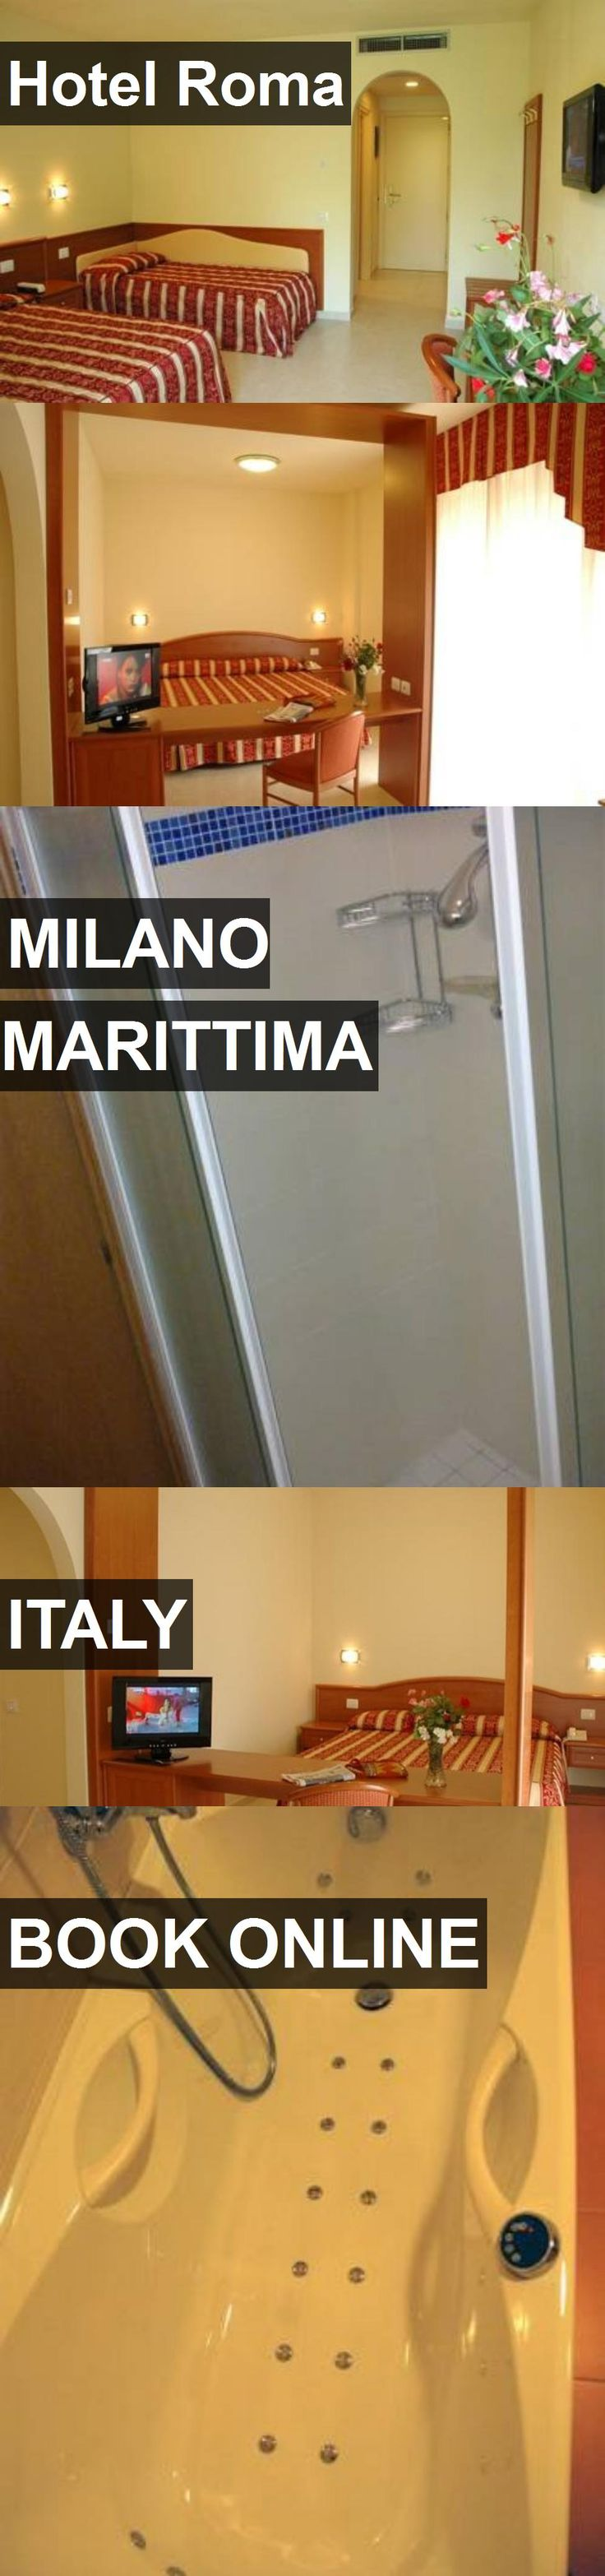 Hotel Roma in Milano Marittima, Italy. For more information, photos, reviews and best prices please follow the link. #Italy #MilanoMarittima #travel #vacation #hotel